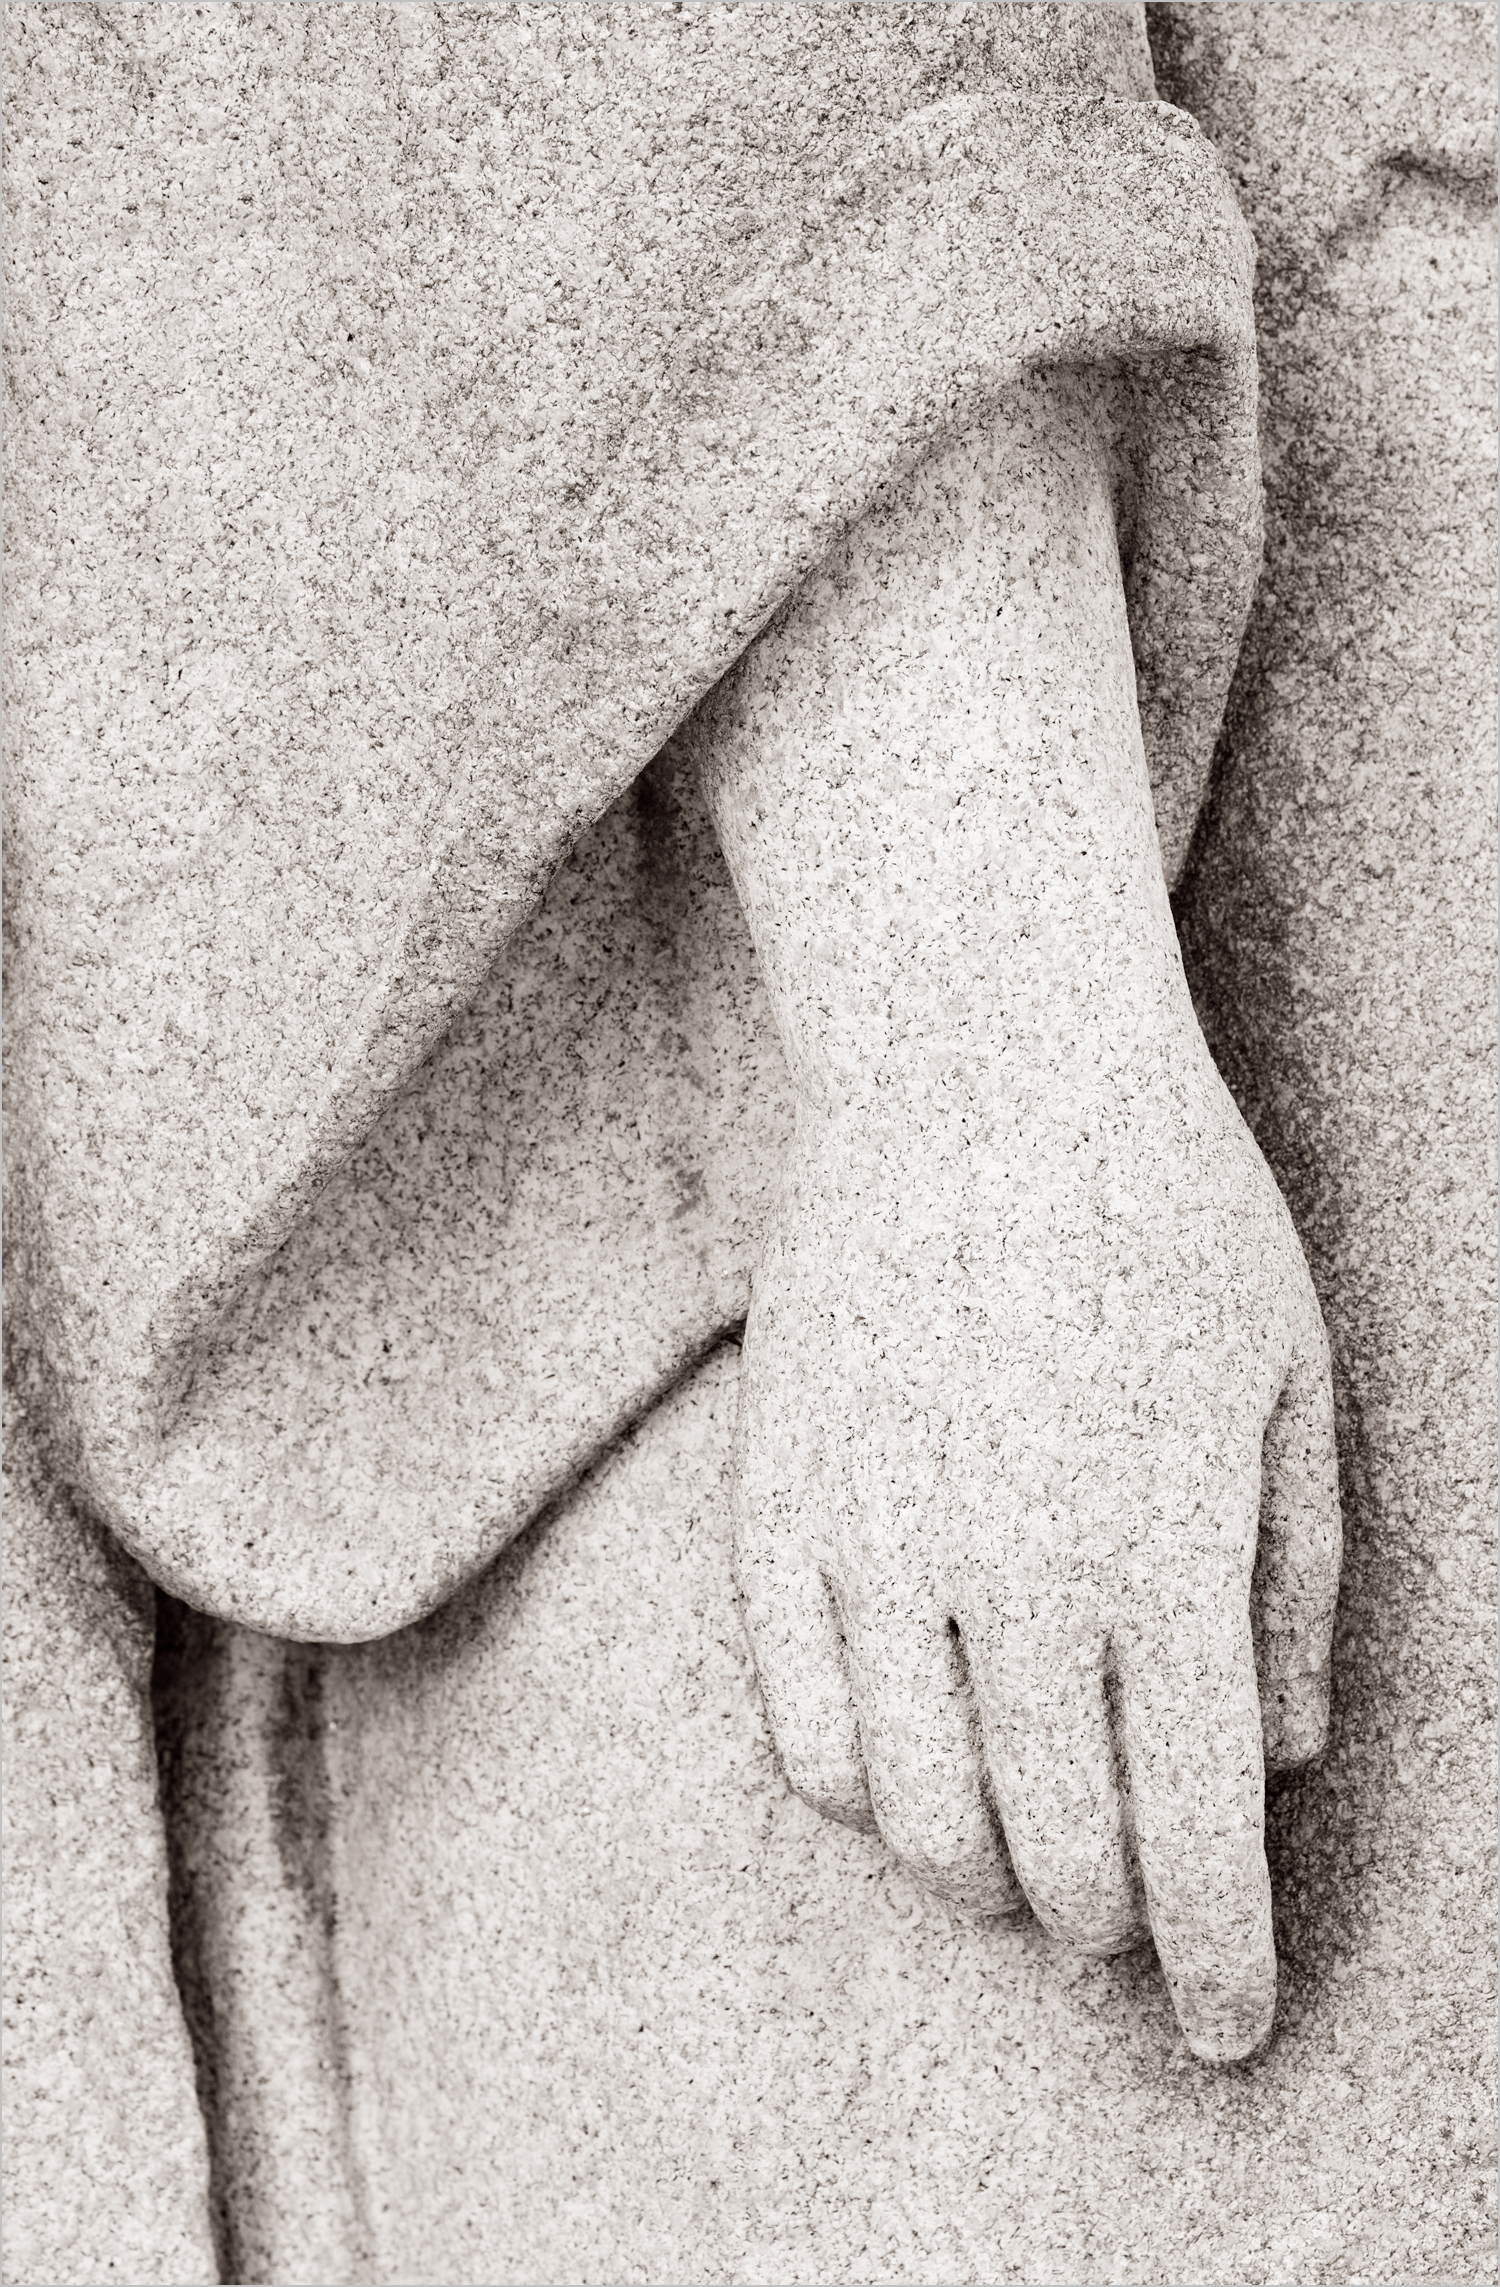 Hand of a gravestone statue in Homewood Cemetery, Pittsburgh